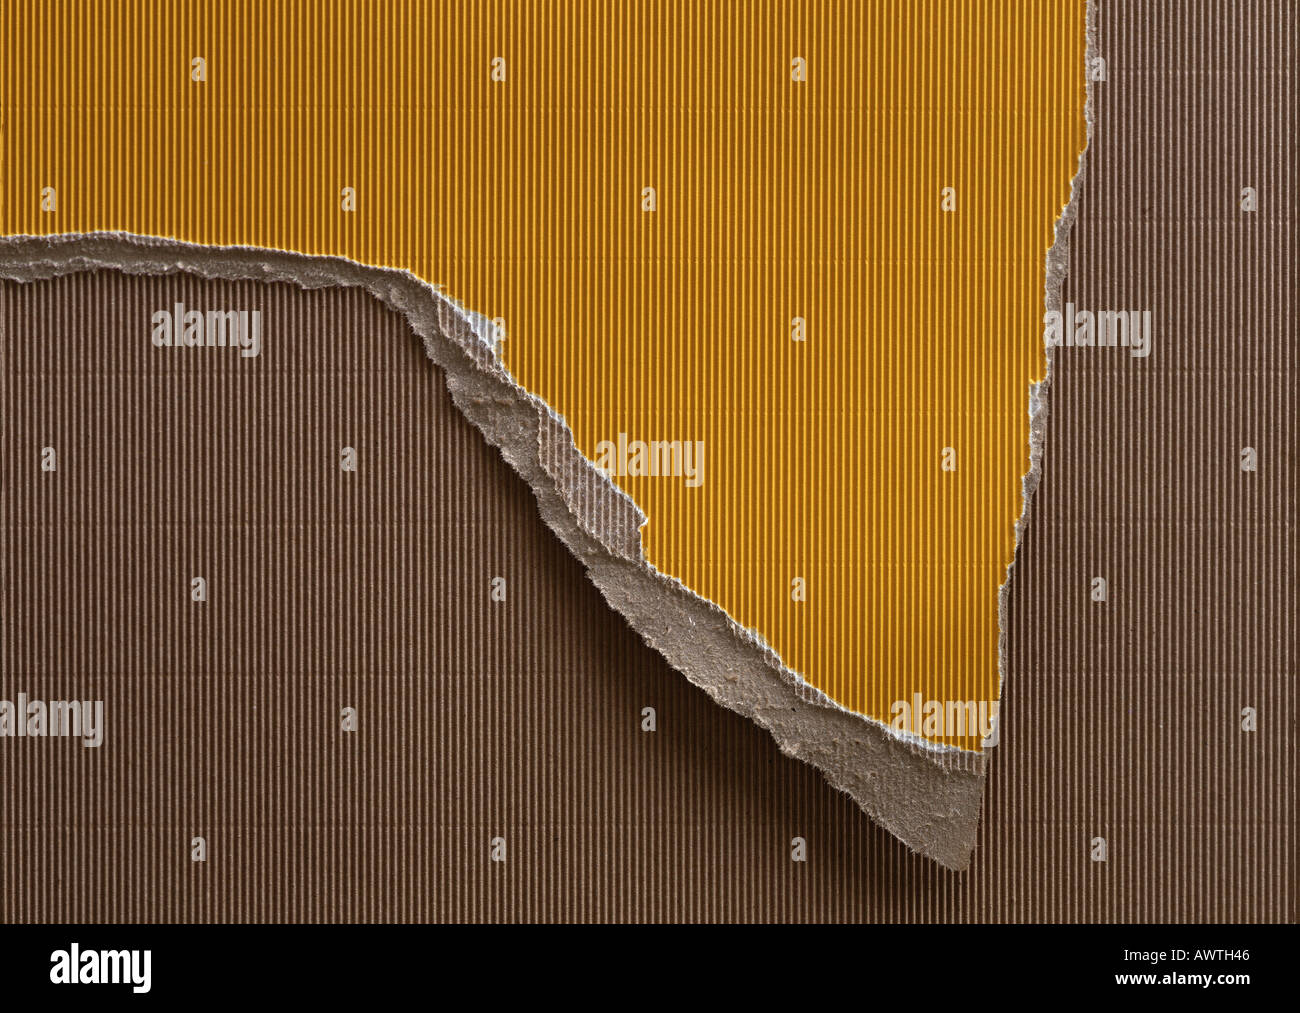 Ripped piece of yellow corrugated paper, on top of brown corrugated paper, close-up, full frame. - Stock Image